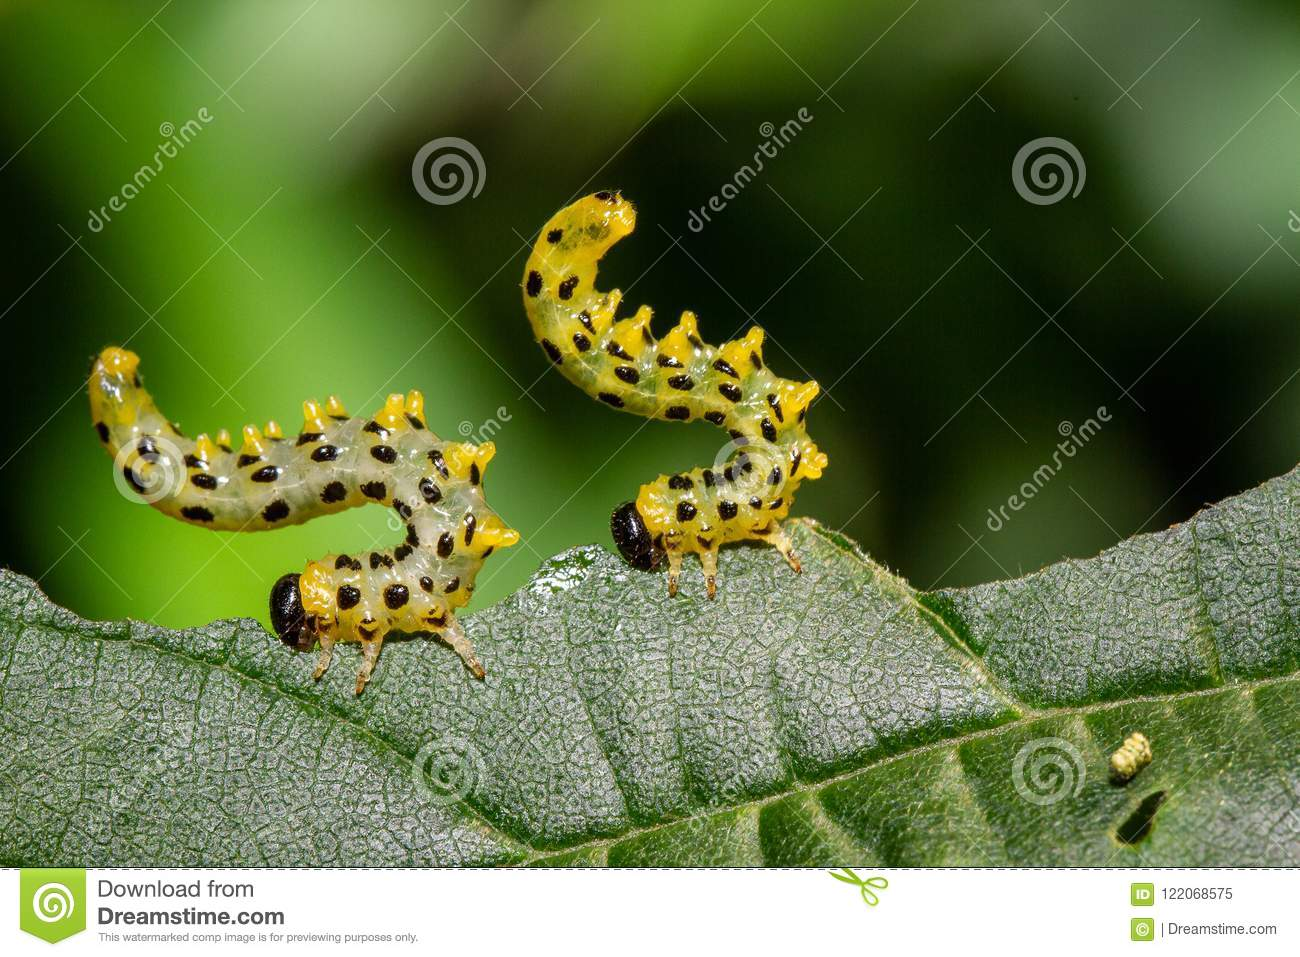 Caterpillars Eating A Leaf, Macro Photography